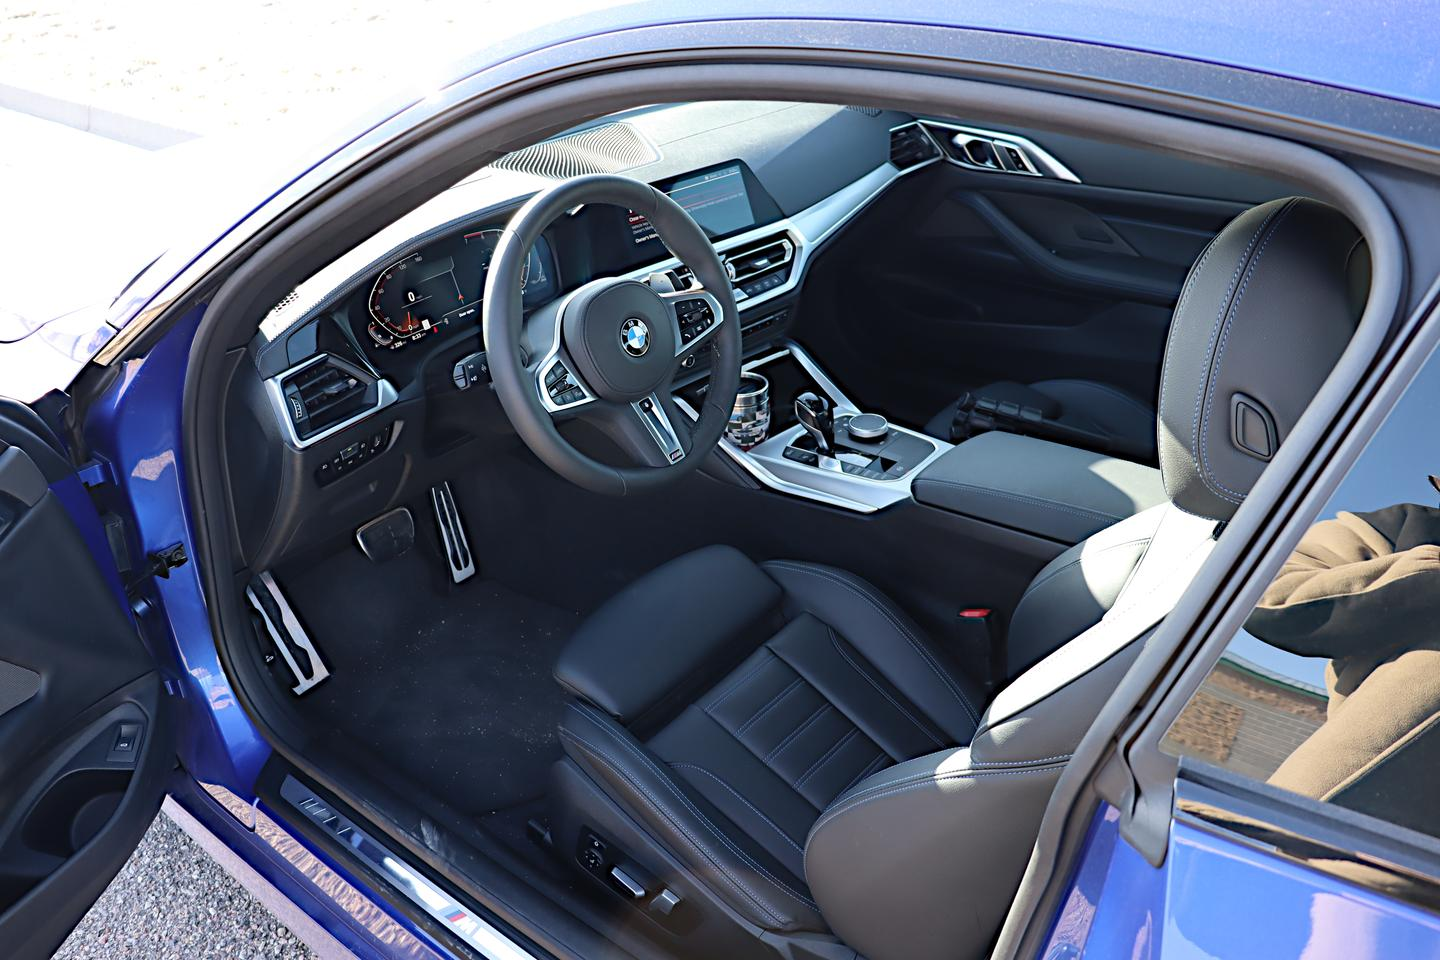 The interior of the 2021 BMW 4 Series is driver-centric and sport focused